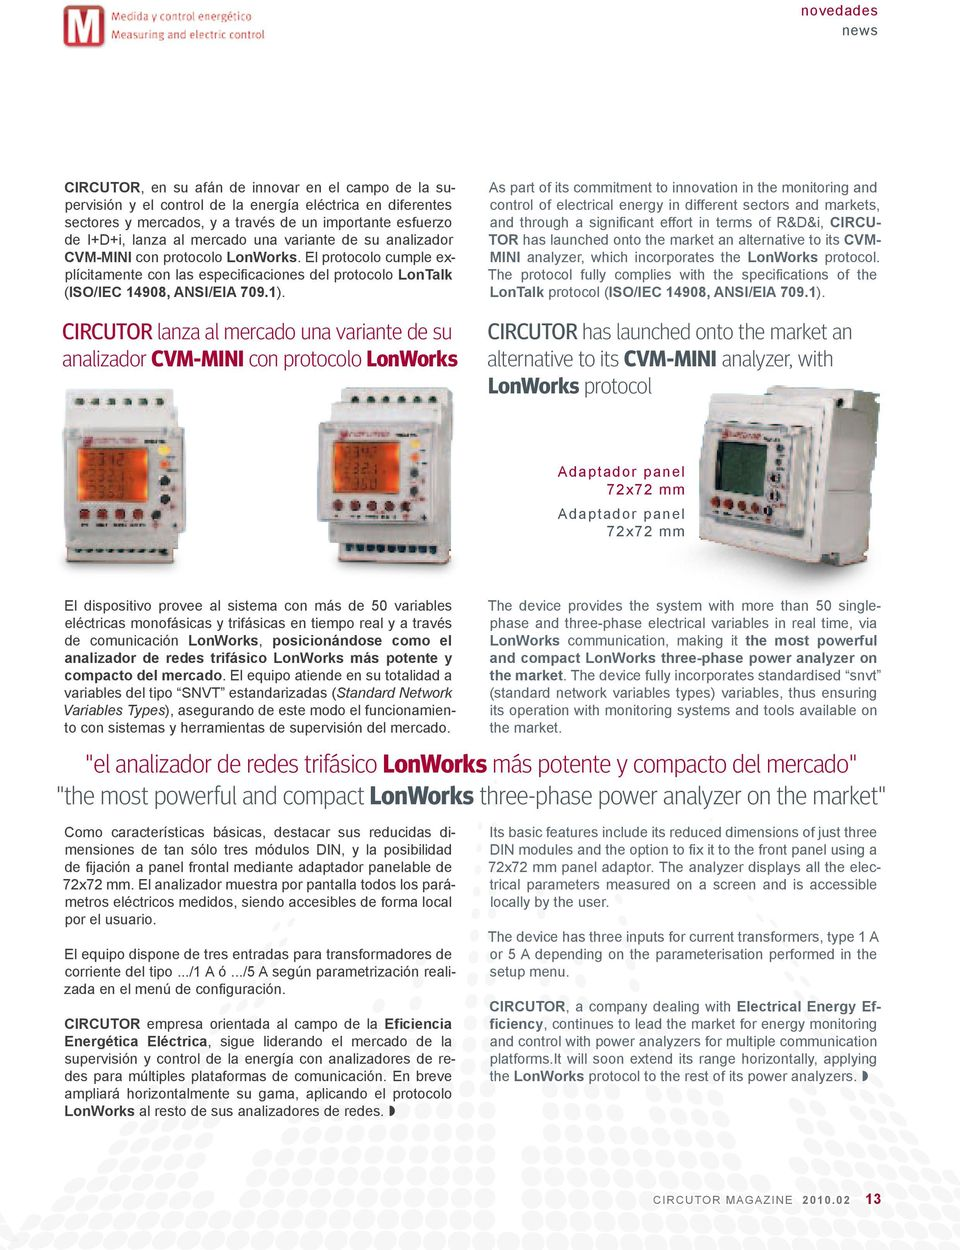 CIRCUTOR lanza al mercado una variante de su analizador CVM-MINI con protocolo LonWorks As part of its commitment to innovation in the monitoring and control of electrical energy in different sectors